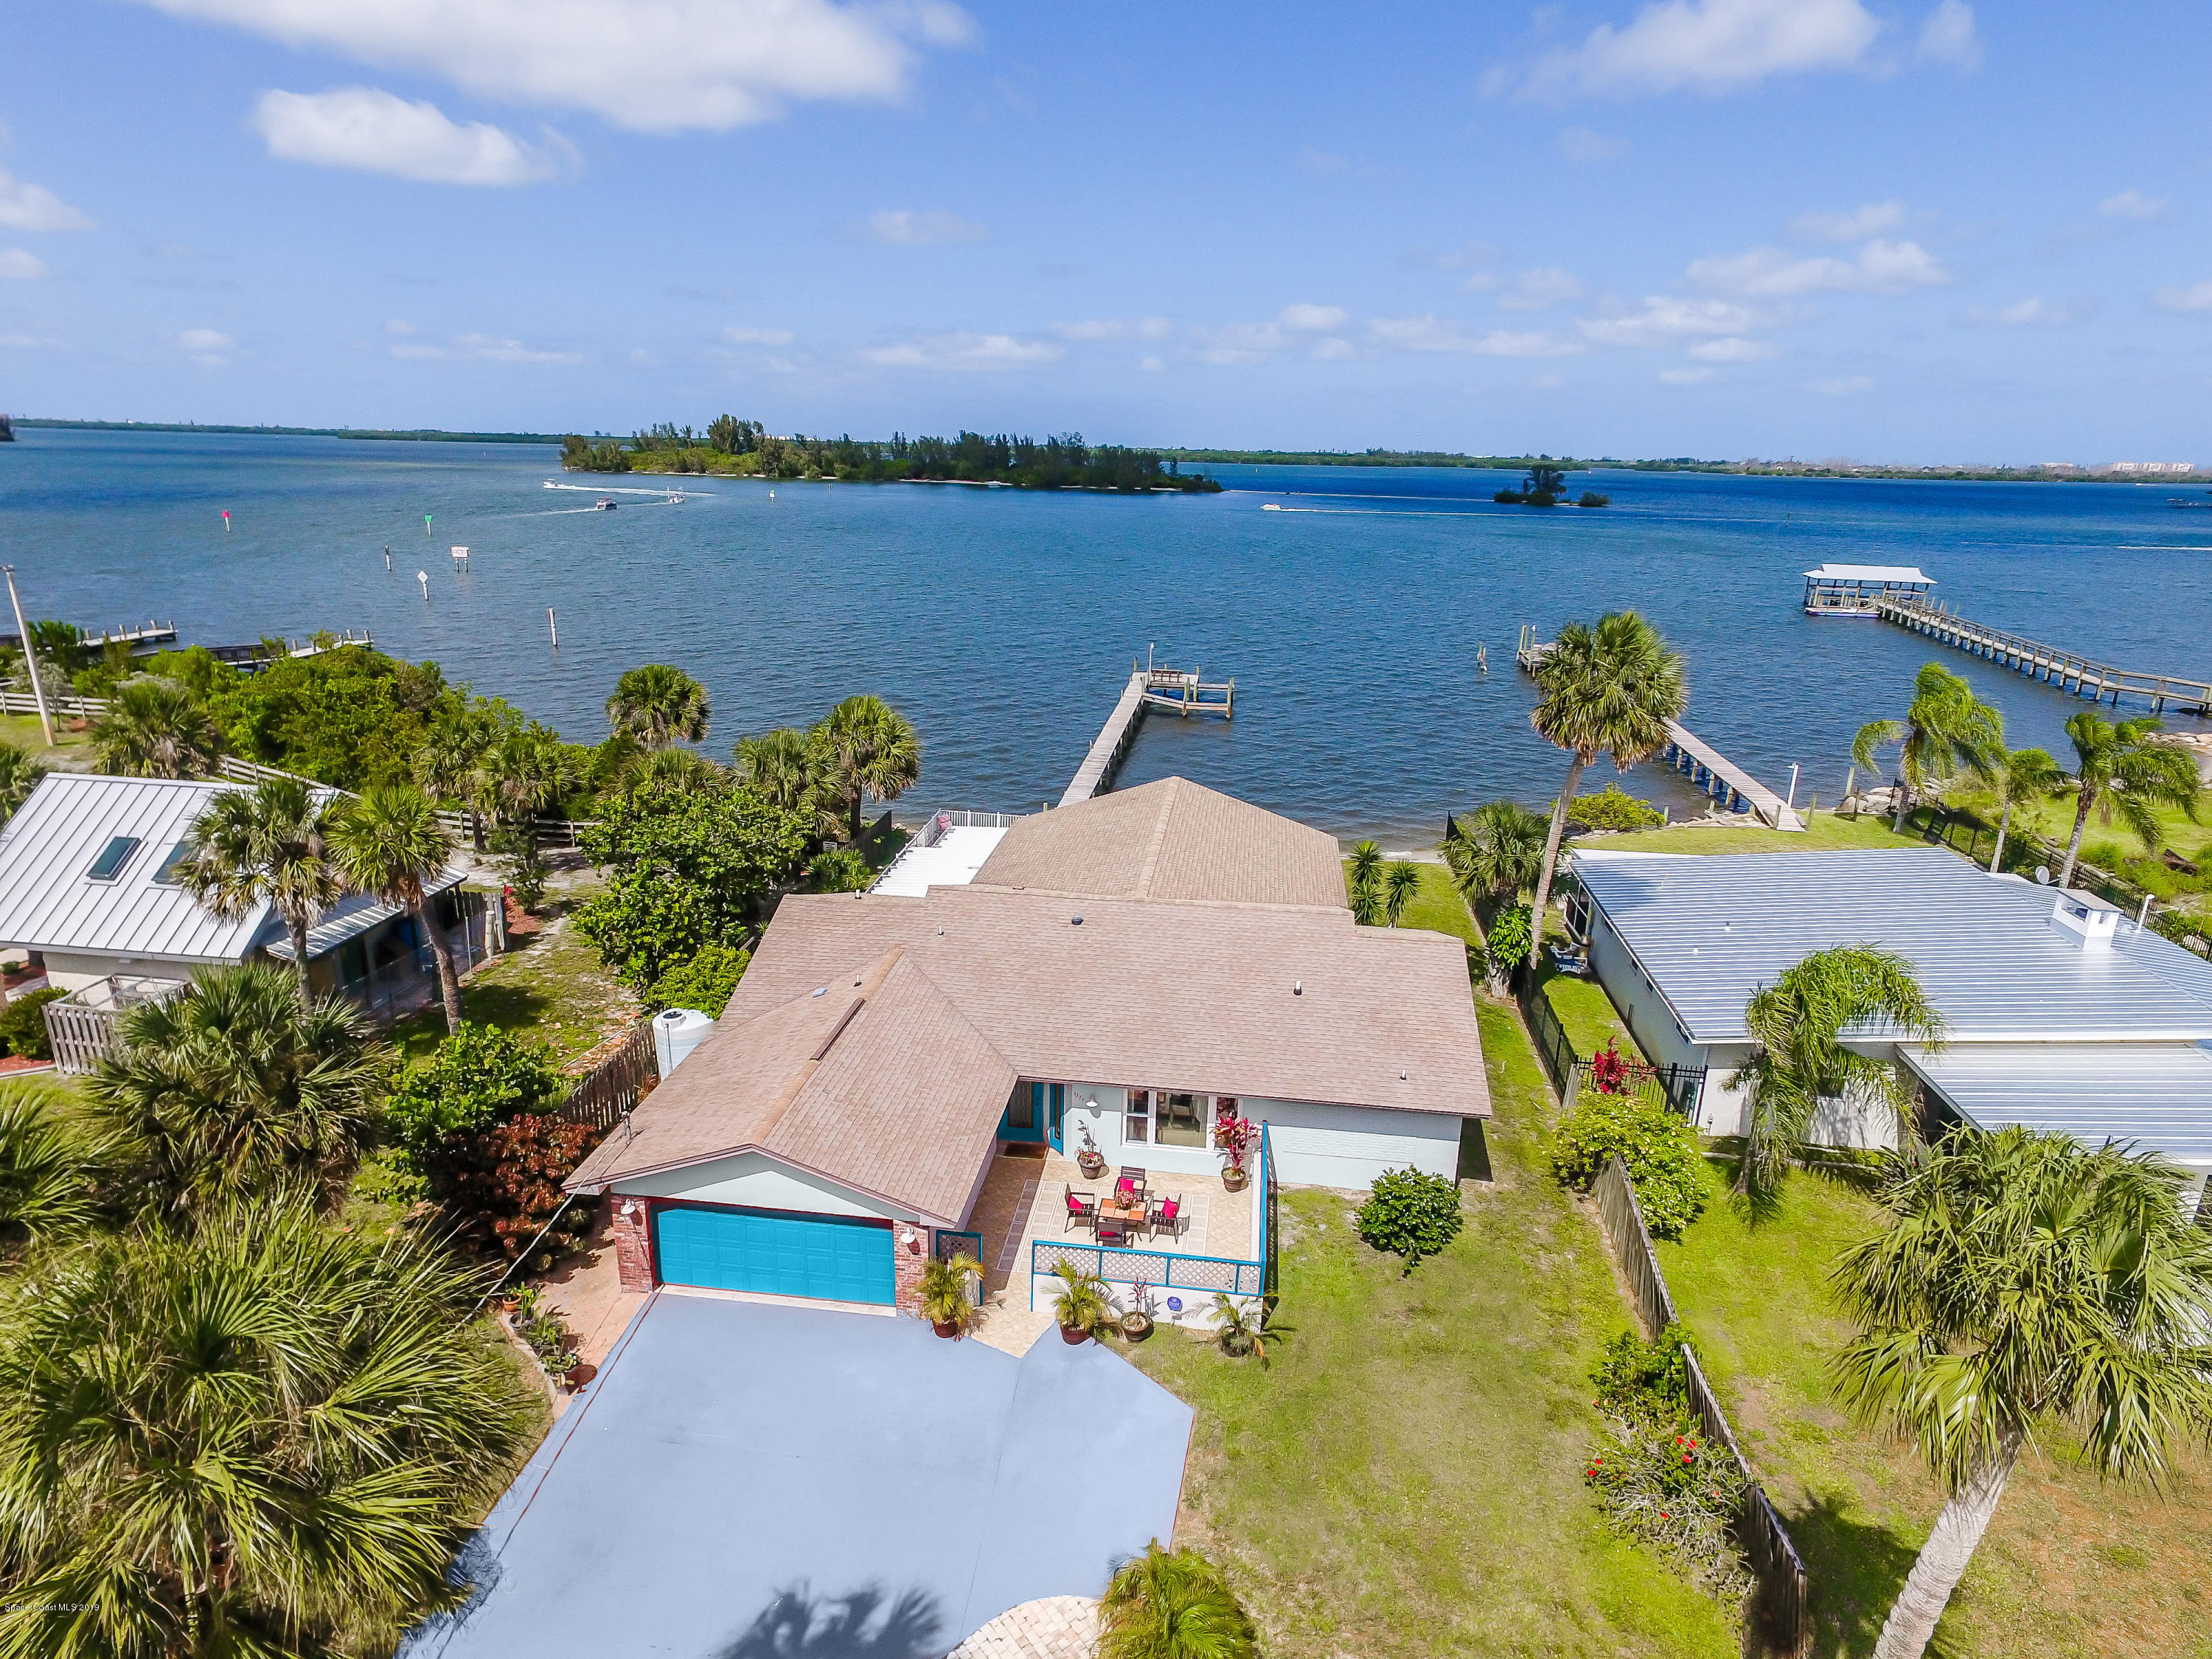 Single Family Homes for Sale at 5375 S Highway 1 Grant Valkaria, Florida 32949 United States